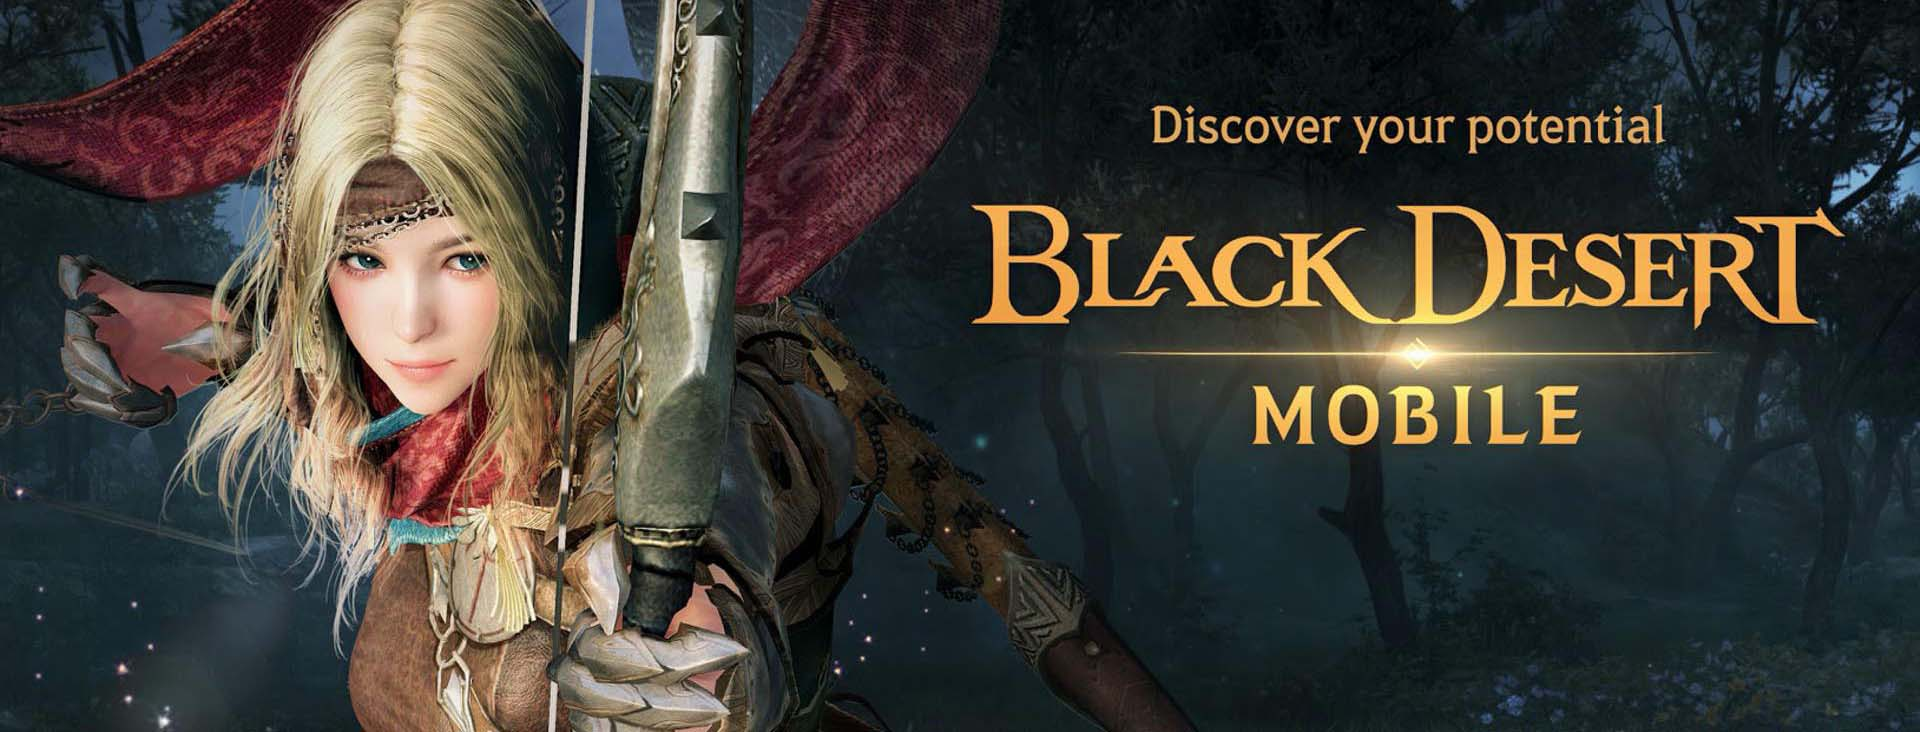 Black Desert Mobile	 on pc